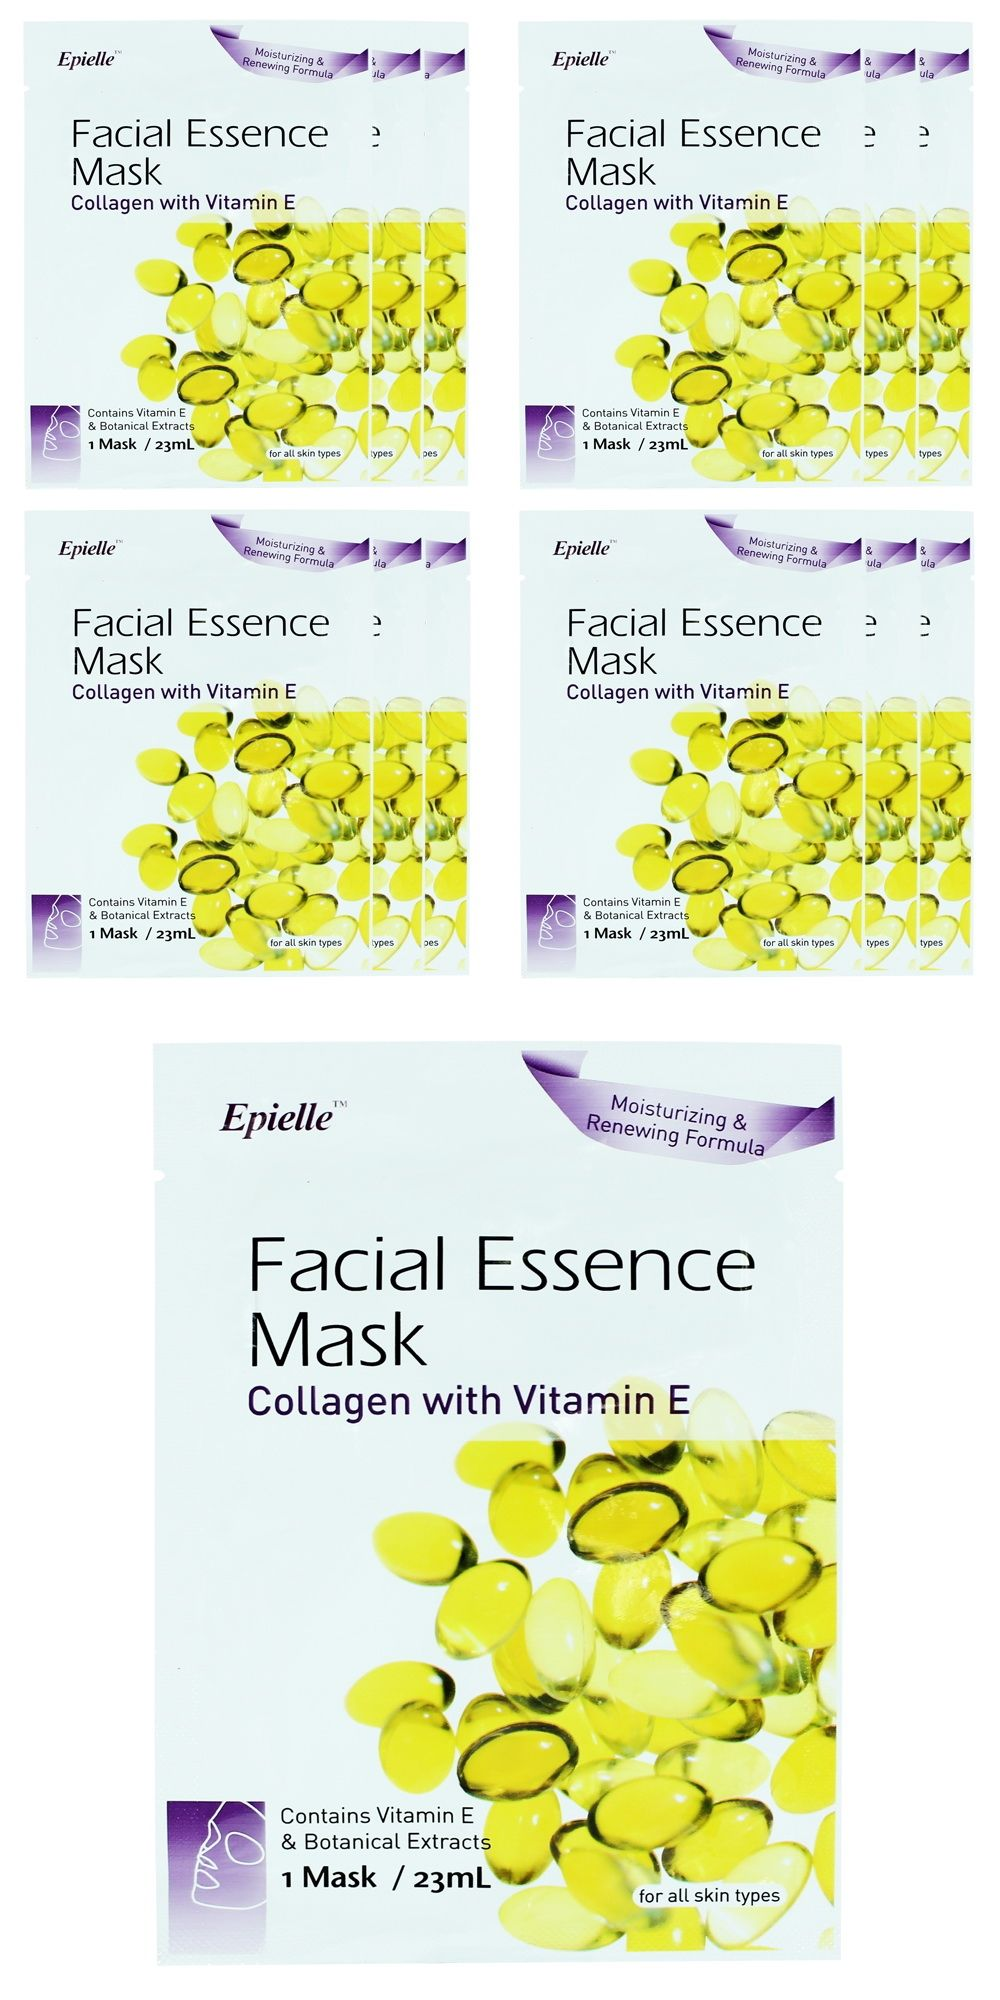 Epielle Collagen with Vitamin E Facial Essence Mask (12 pack) Somme Institute - Cleanse & Mask Set, Fnfused w/ minerals, enzymes & vitamins